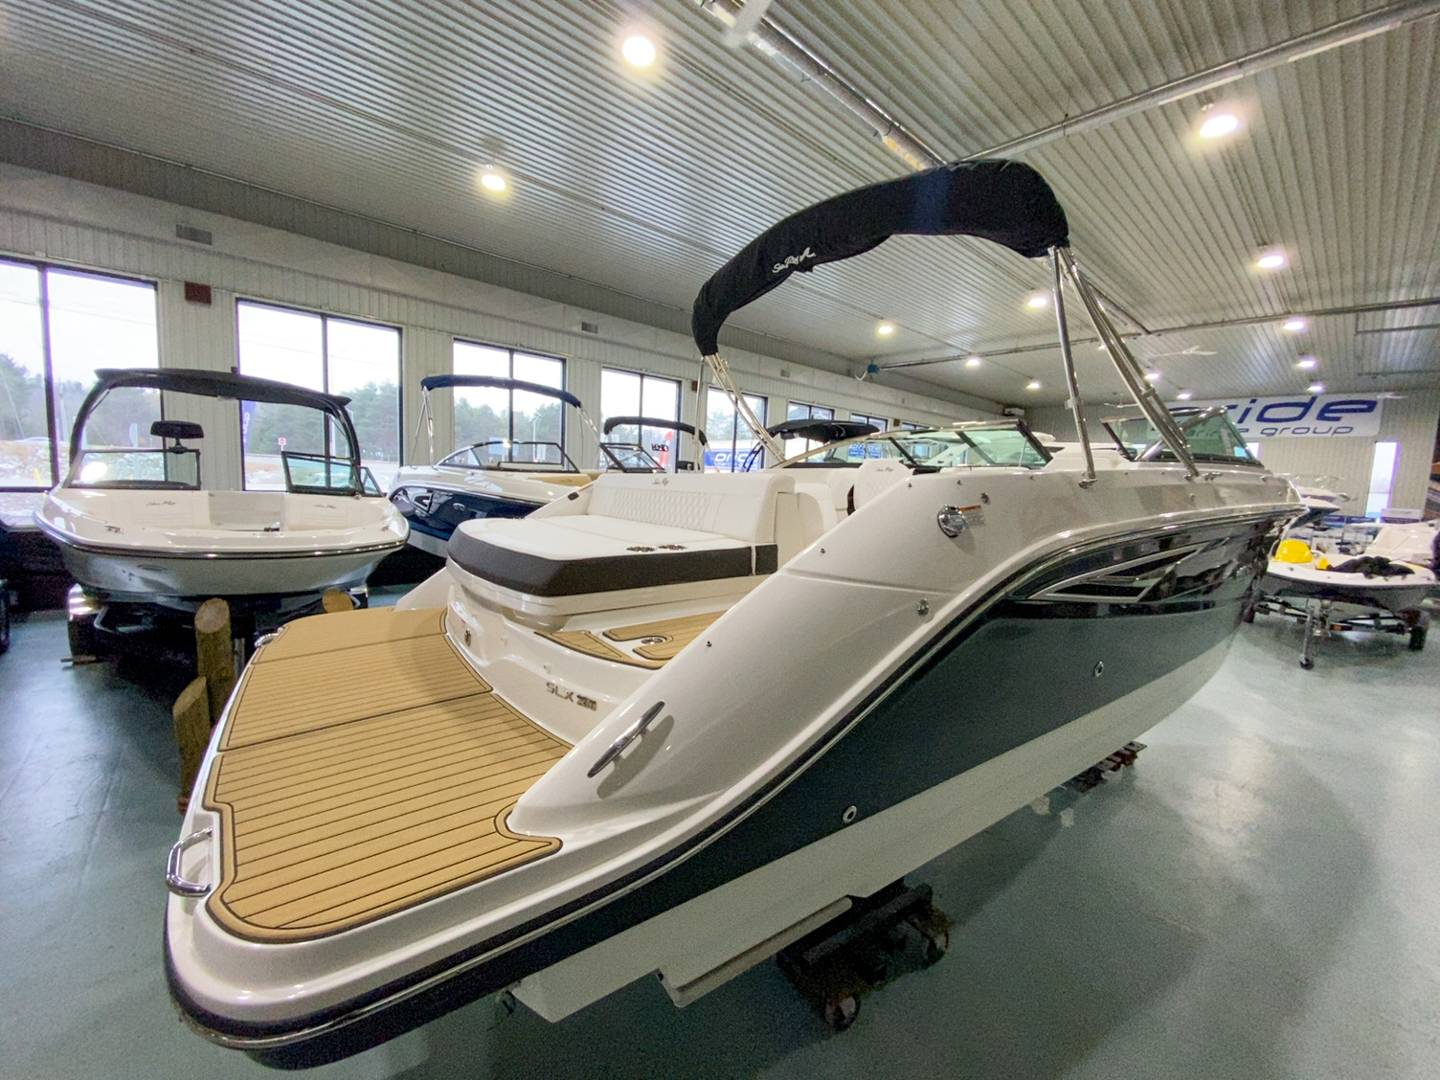 2021 Sea Ray boat for sale, model of the boat is SLX 250 & Image # 13 of 16